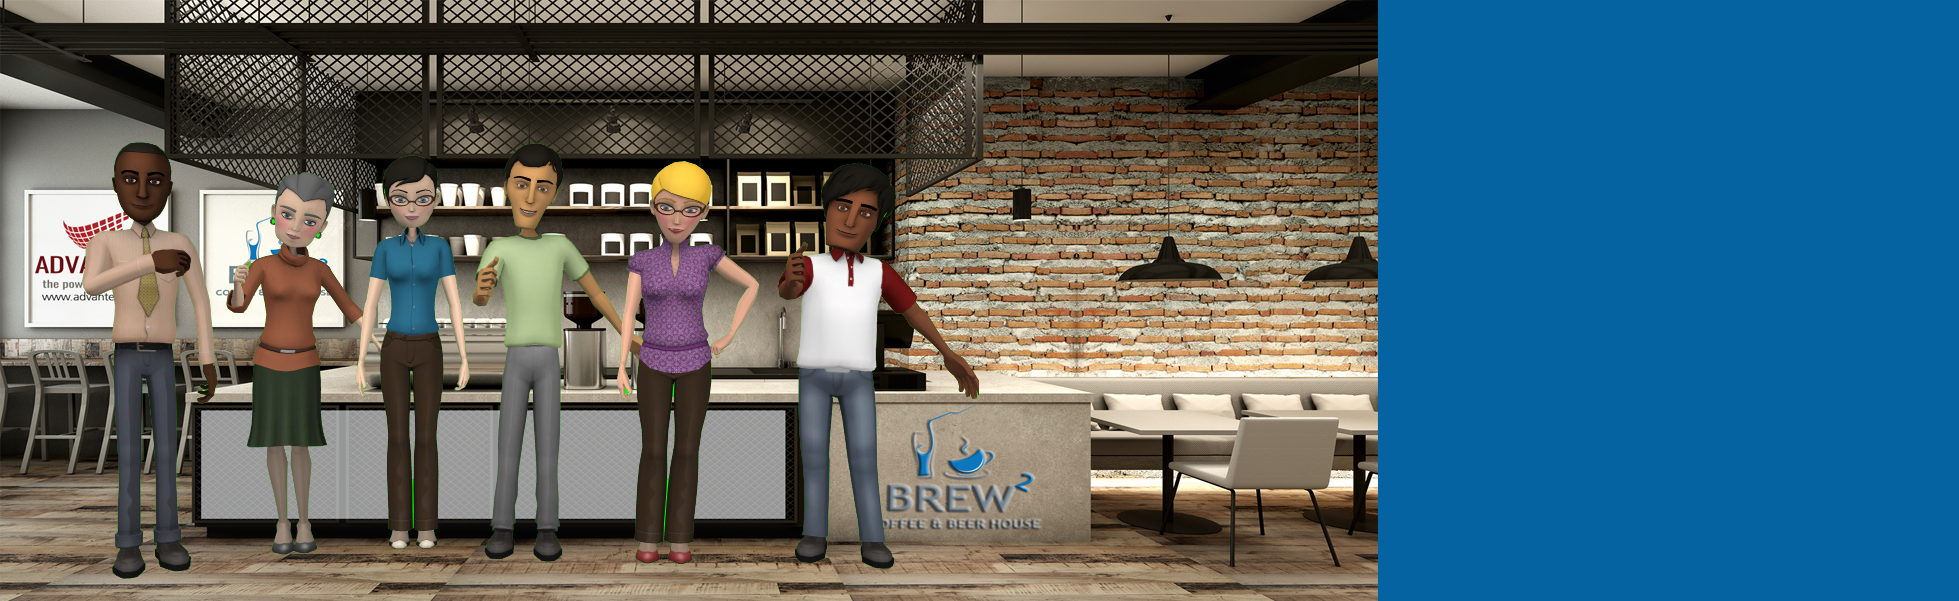 brew-2-landing-page-banner.png